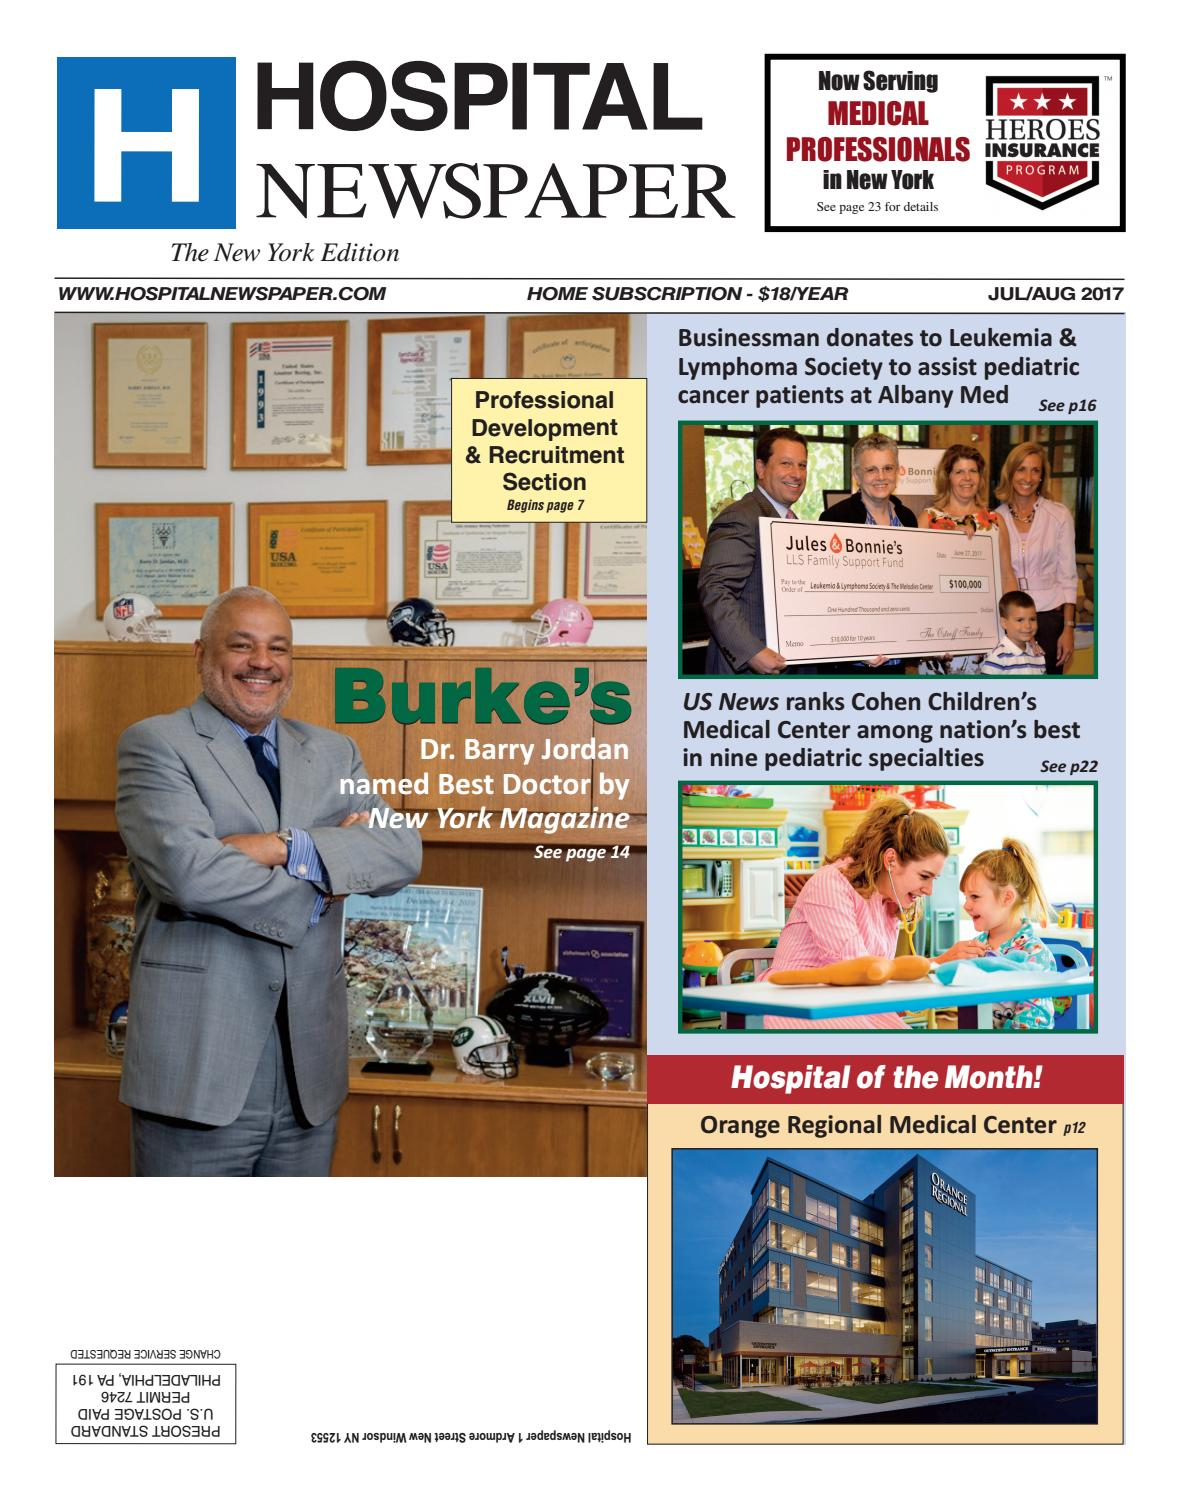 Hospital Newspaper New York July/August 2017 ebook by Belsito